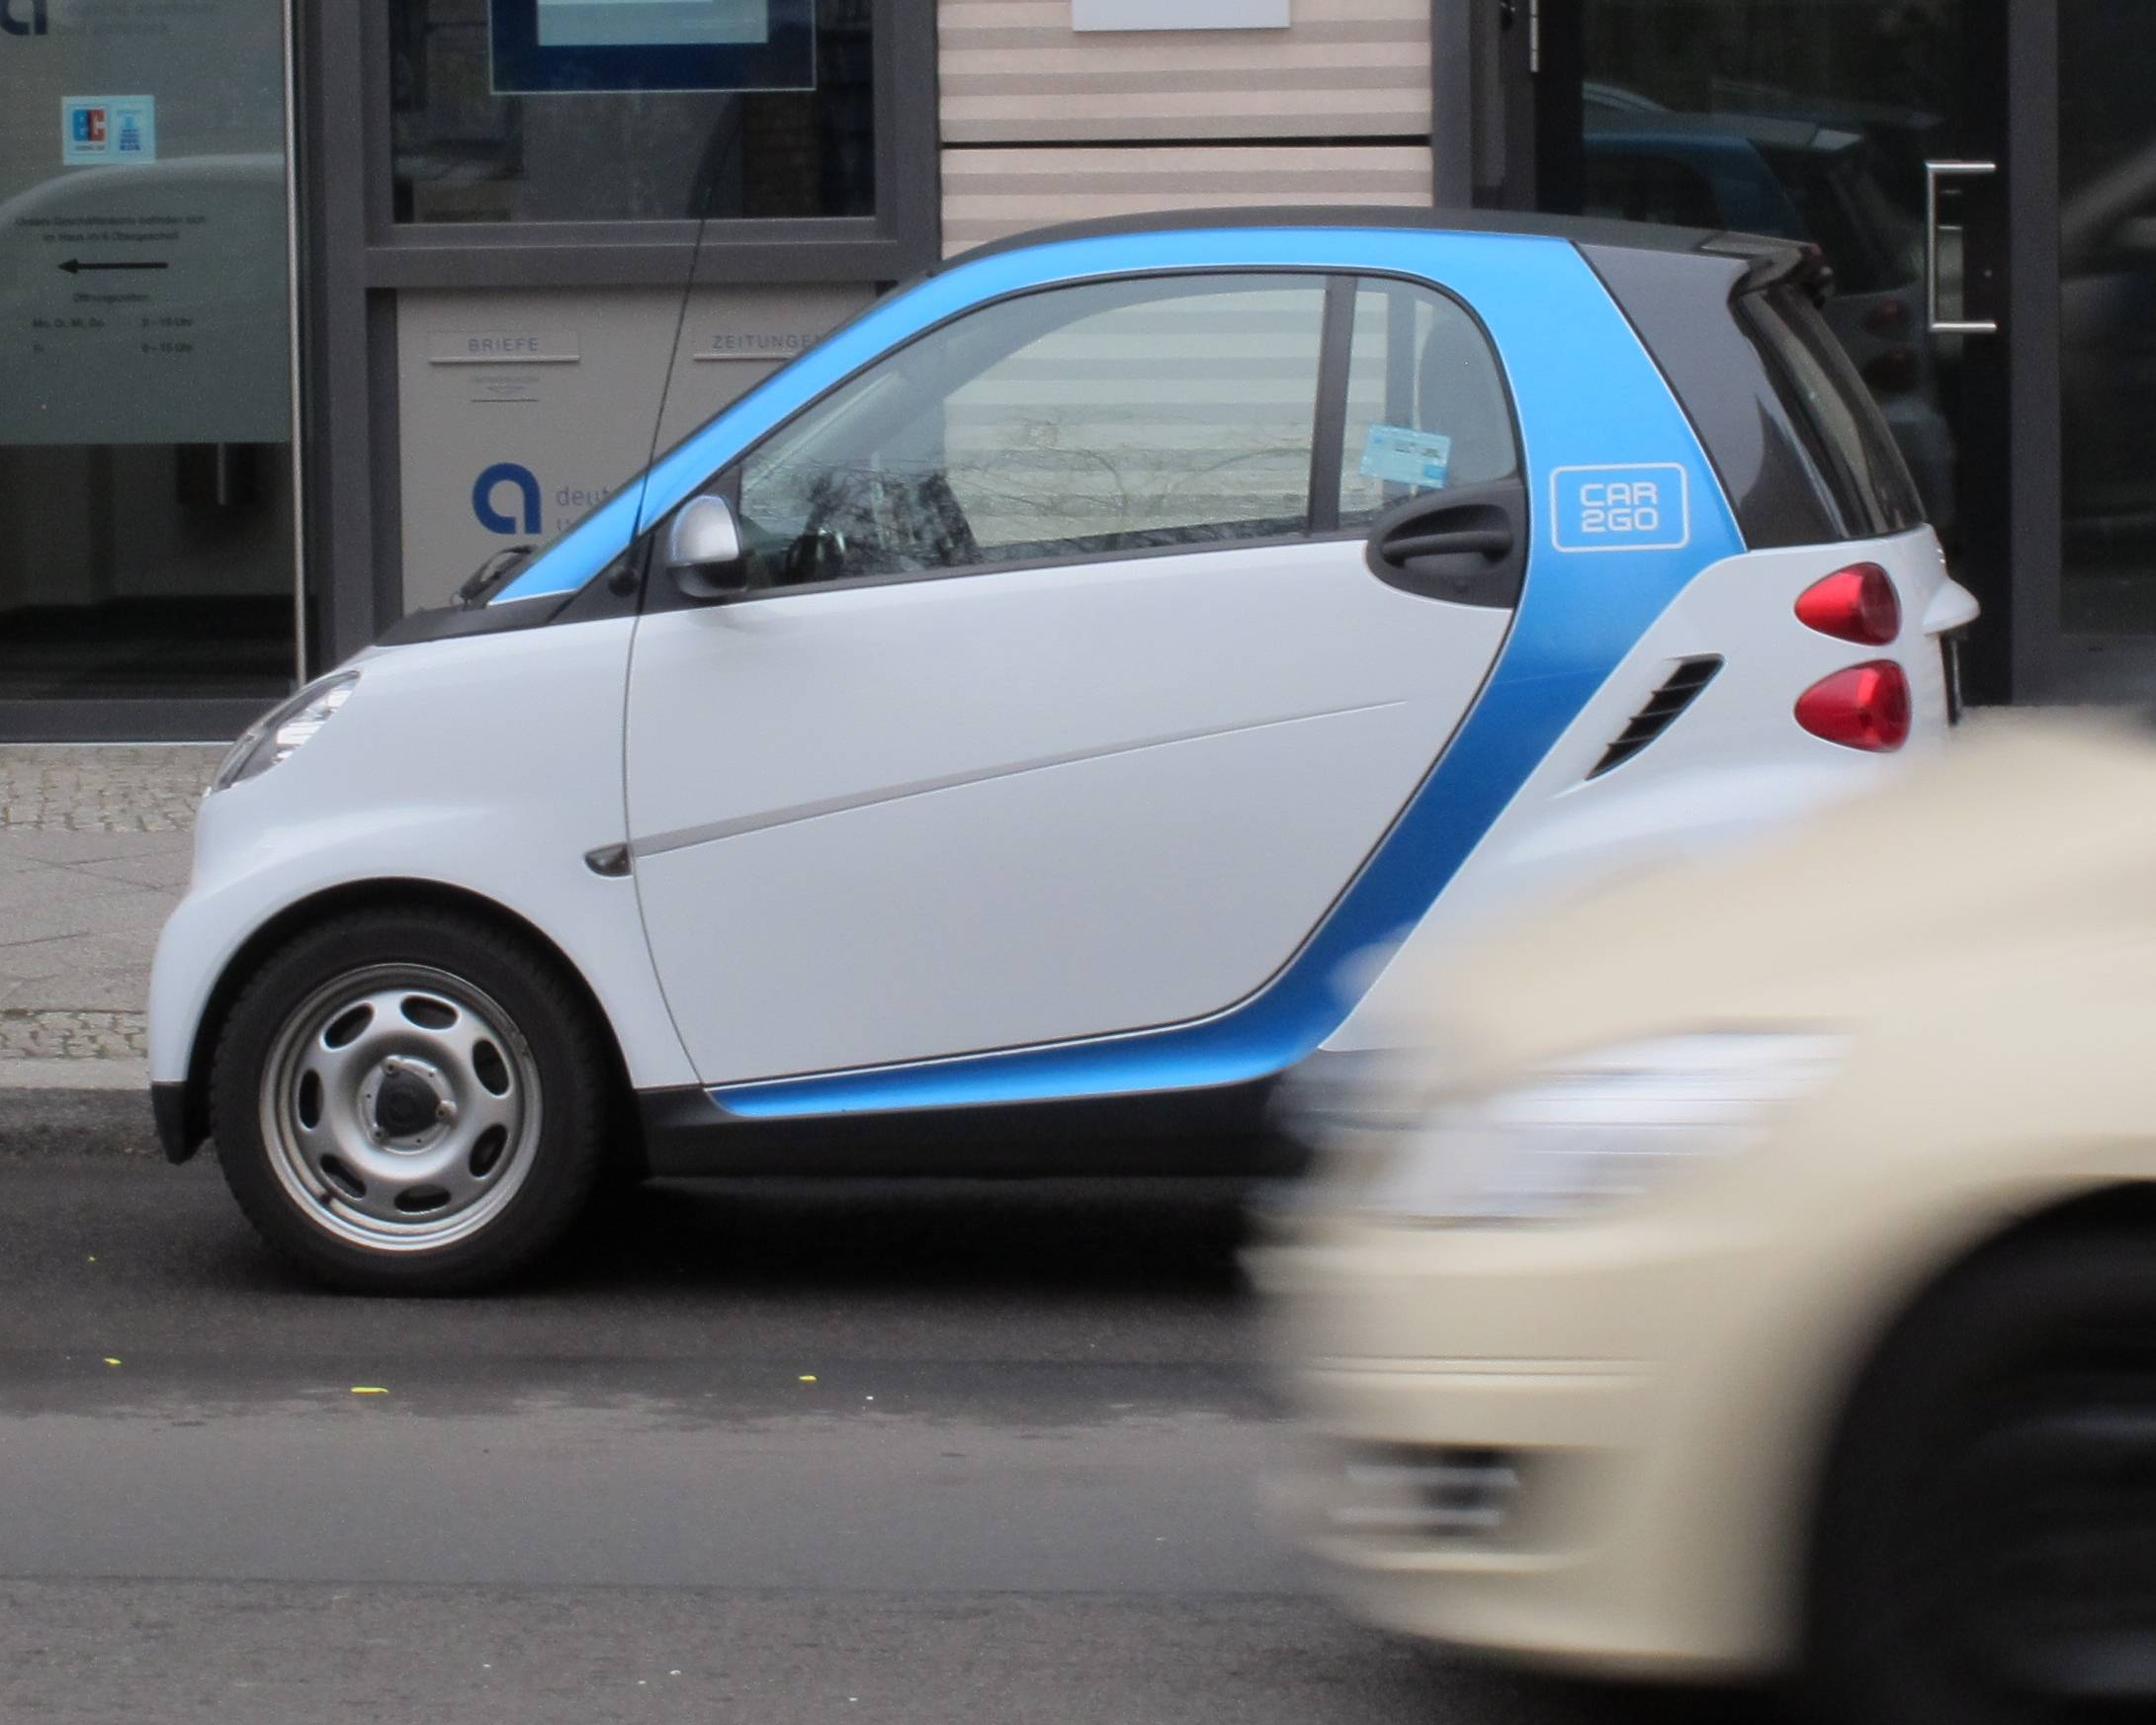 A Car2Go vehicle is parked in central Berlin Wednesday. The service, operated by Mercedes-Benz and Smart car manufacturer Daimler launched a new intercity service recently.